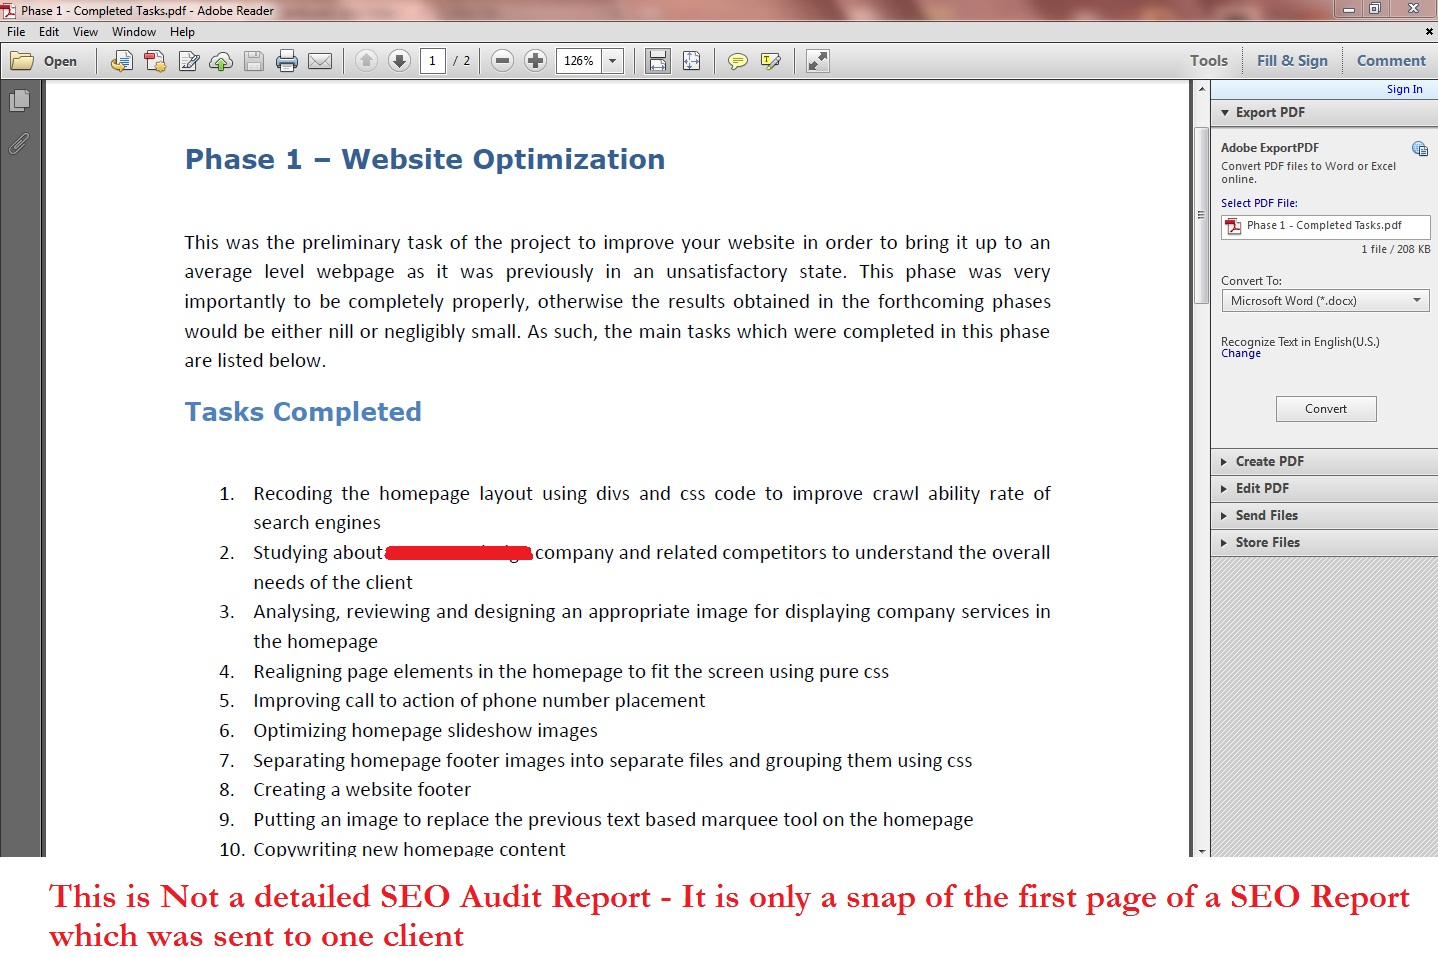 I will conduct a SEO Audit for your website